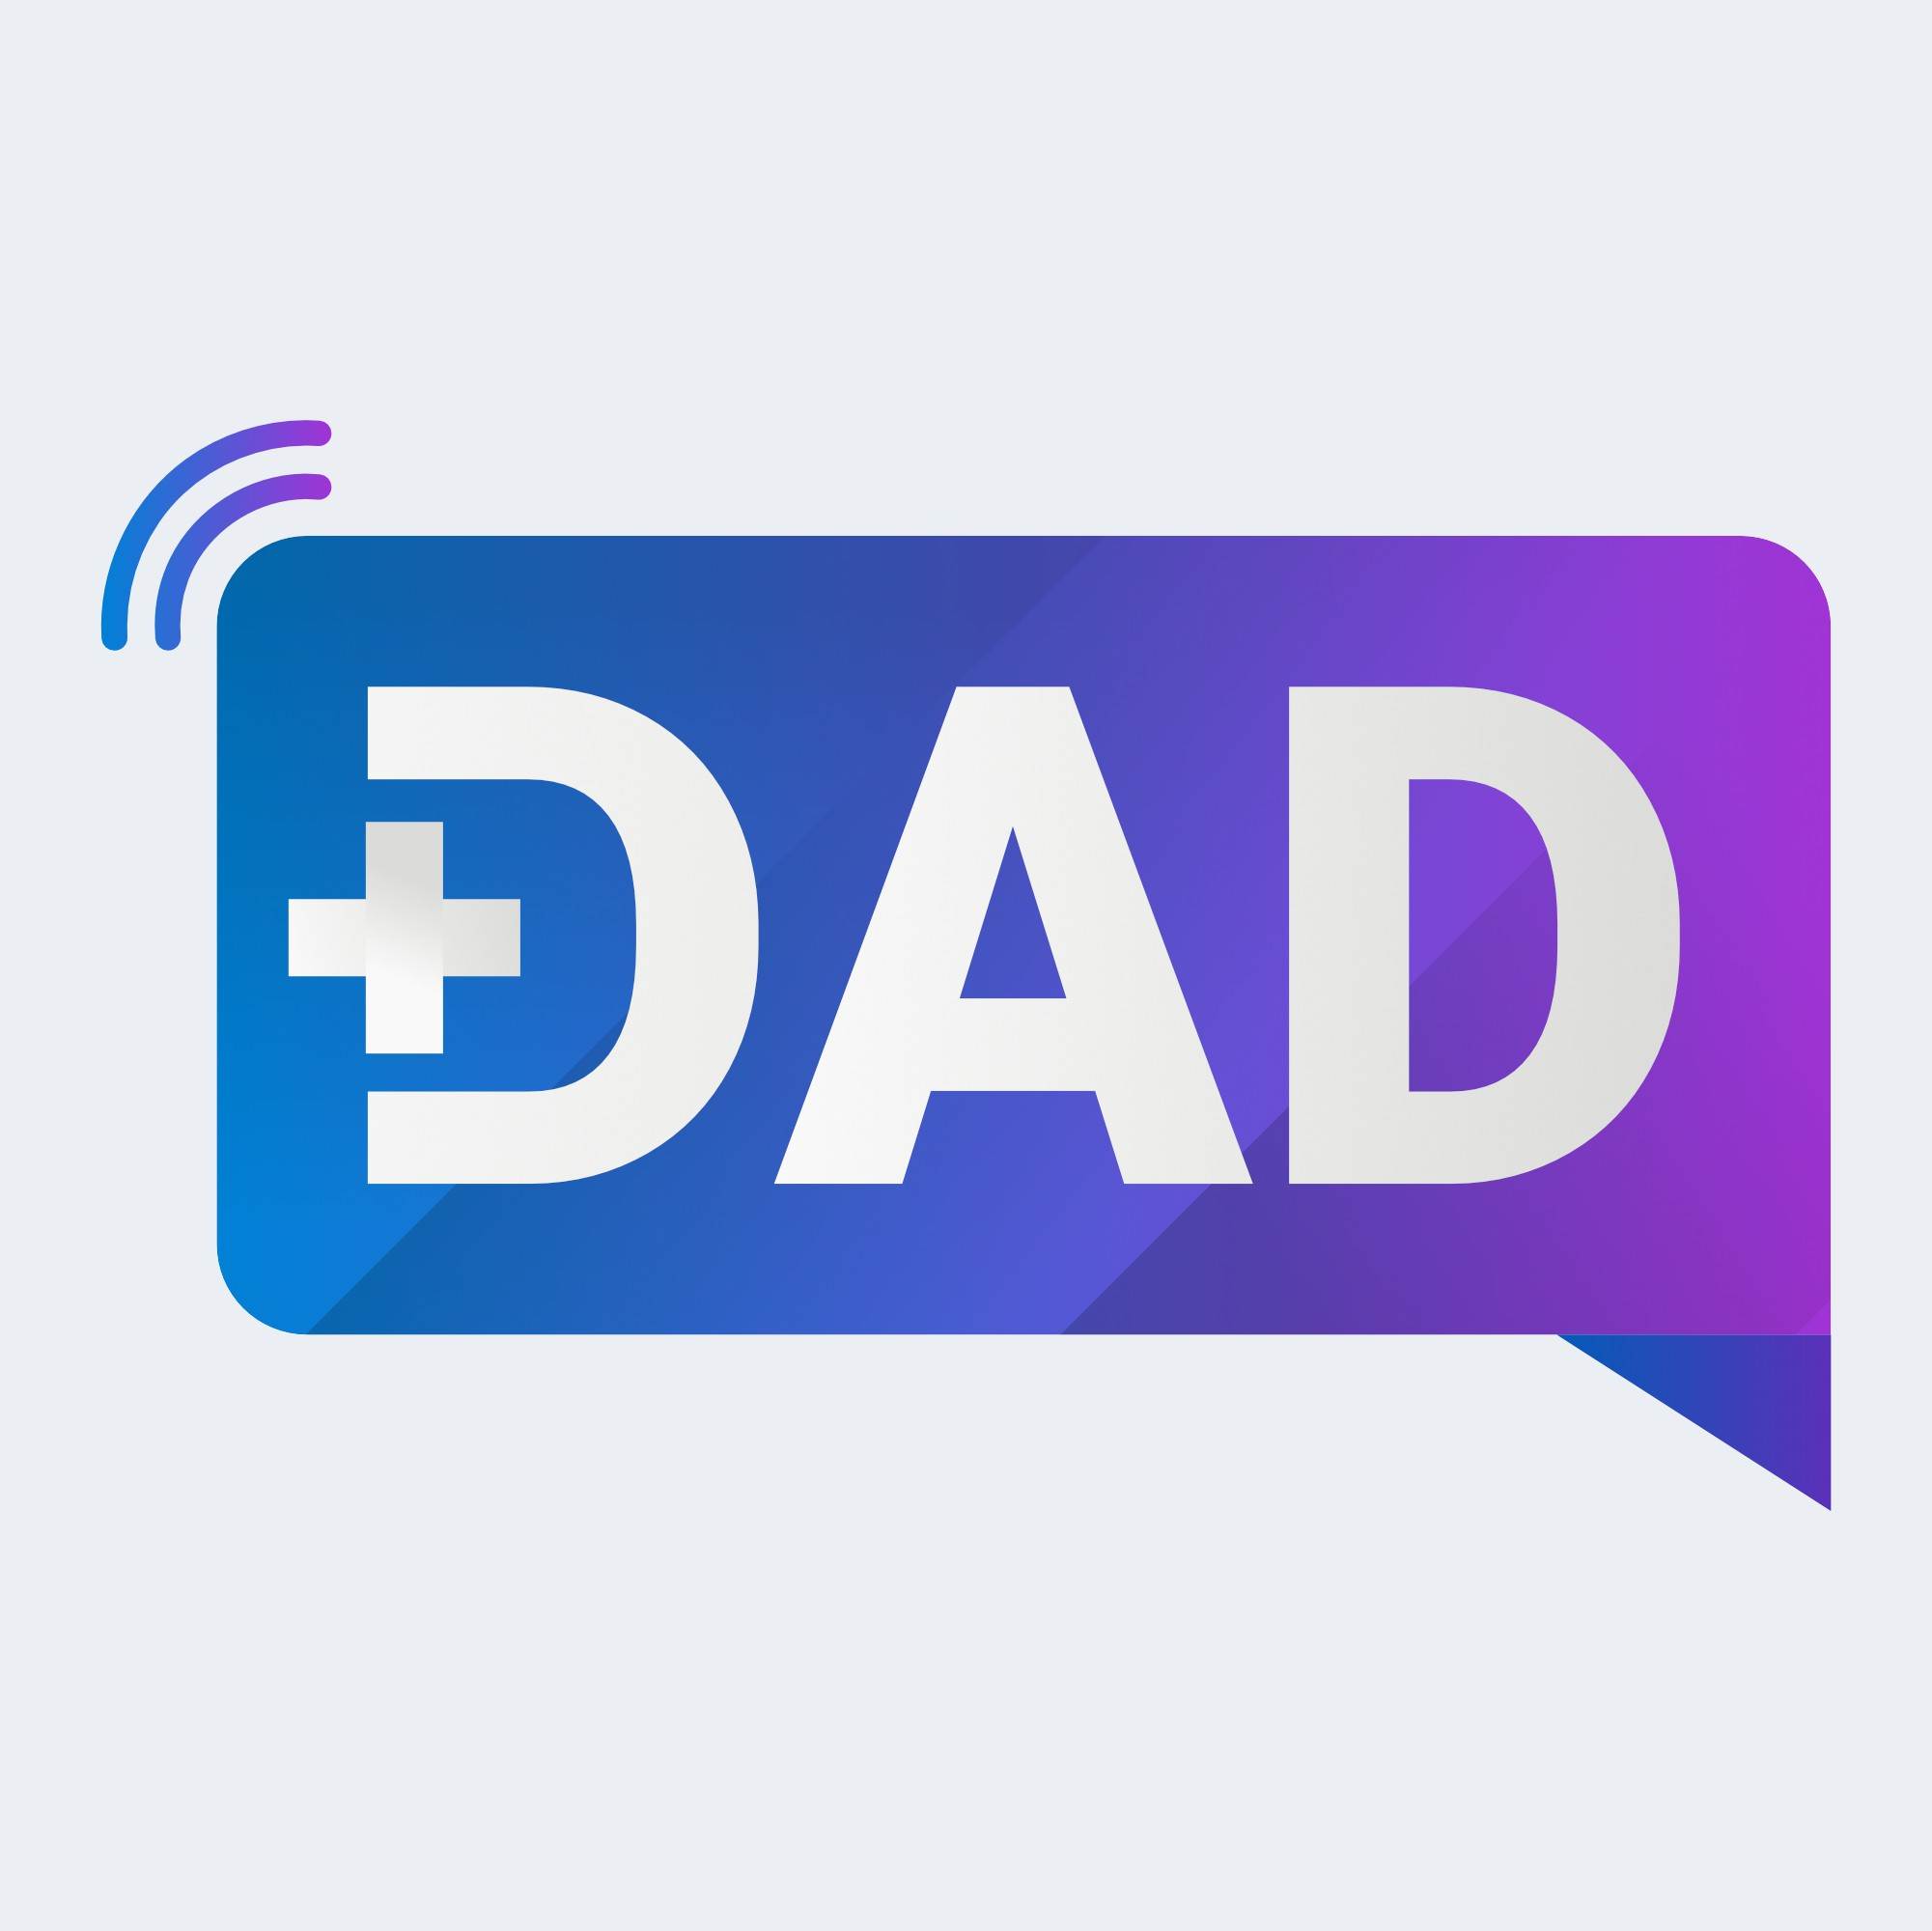 Create a logo for a new podcast for dads!